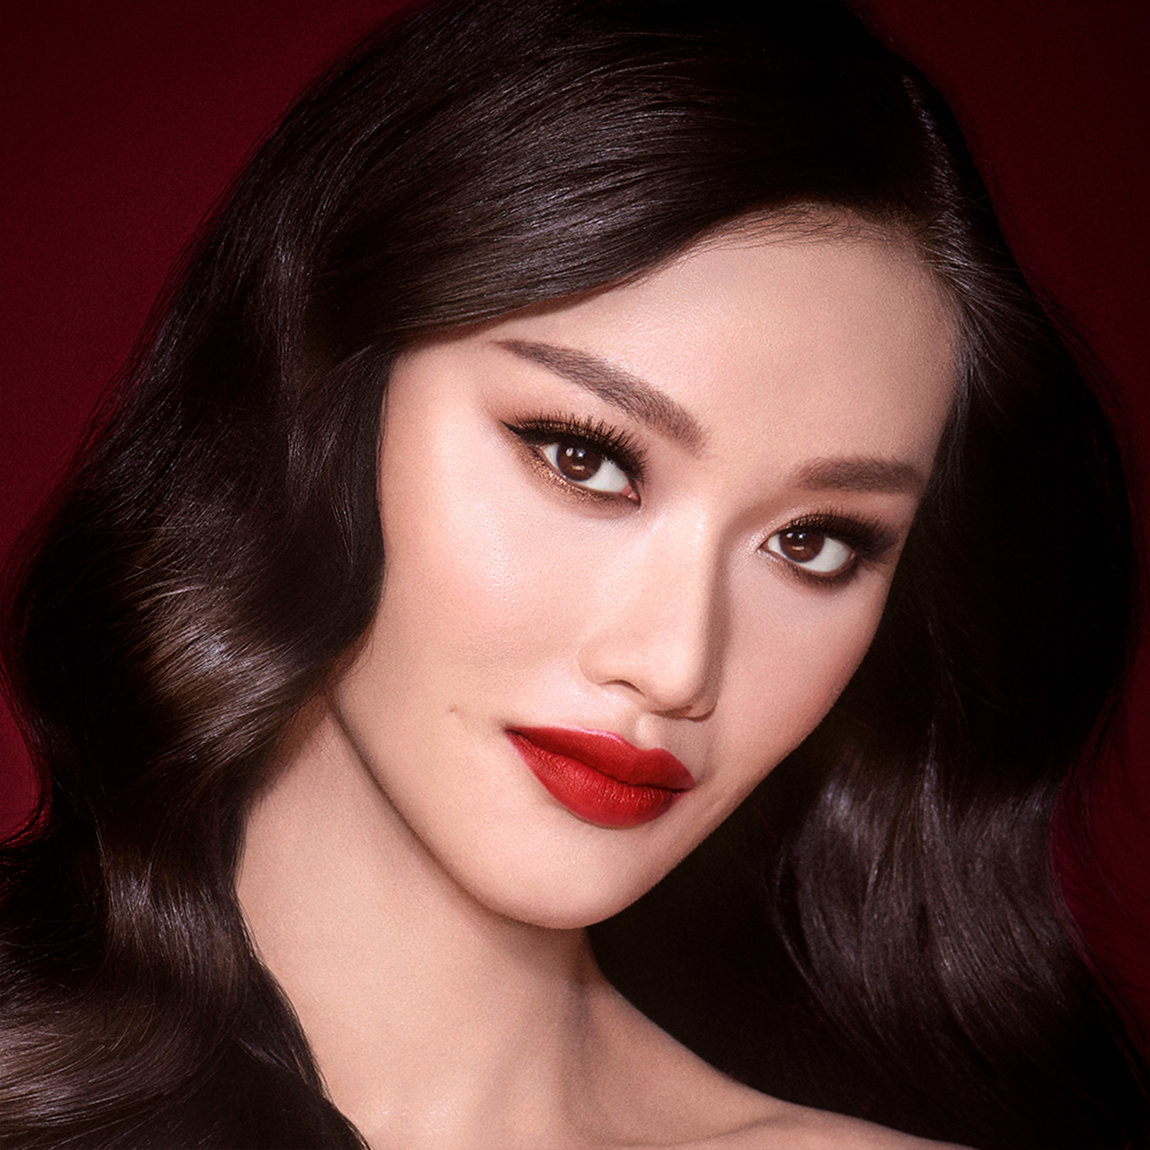 Charlotte Tilbury Get the Look The Bombshell product swatch.